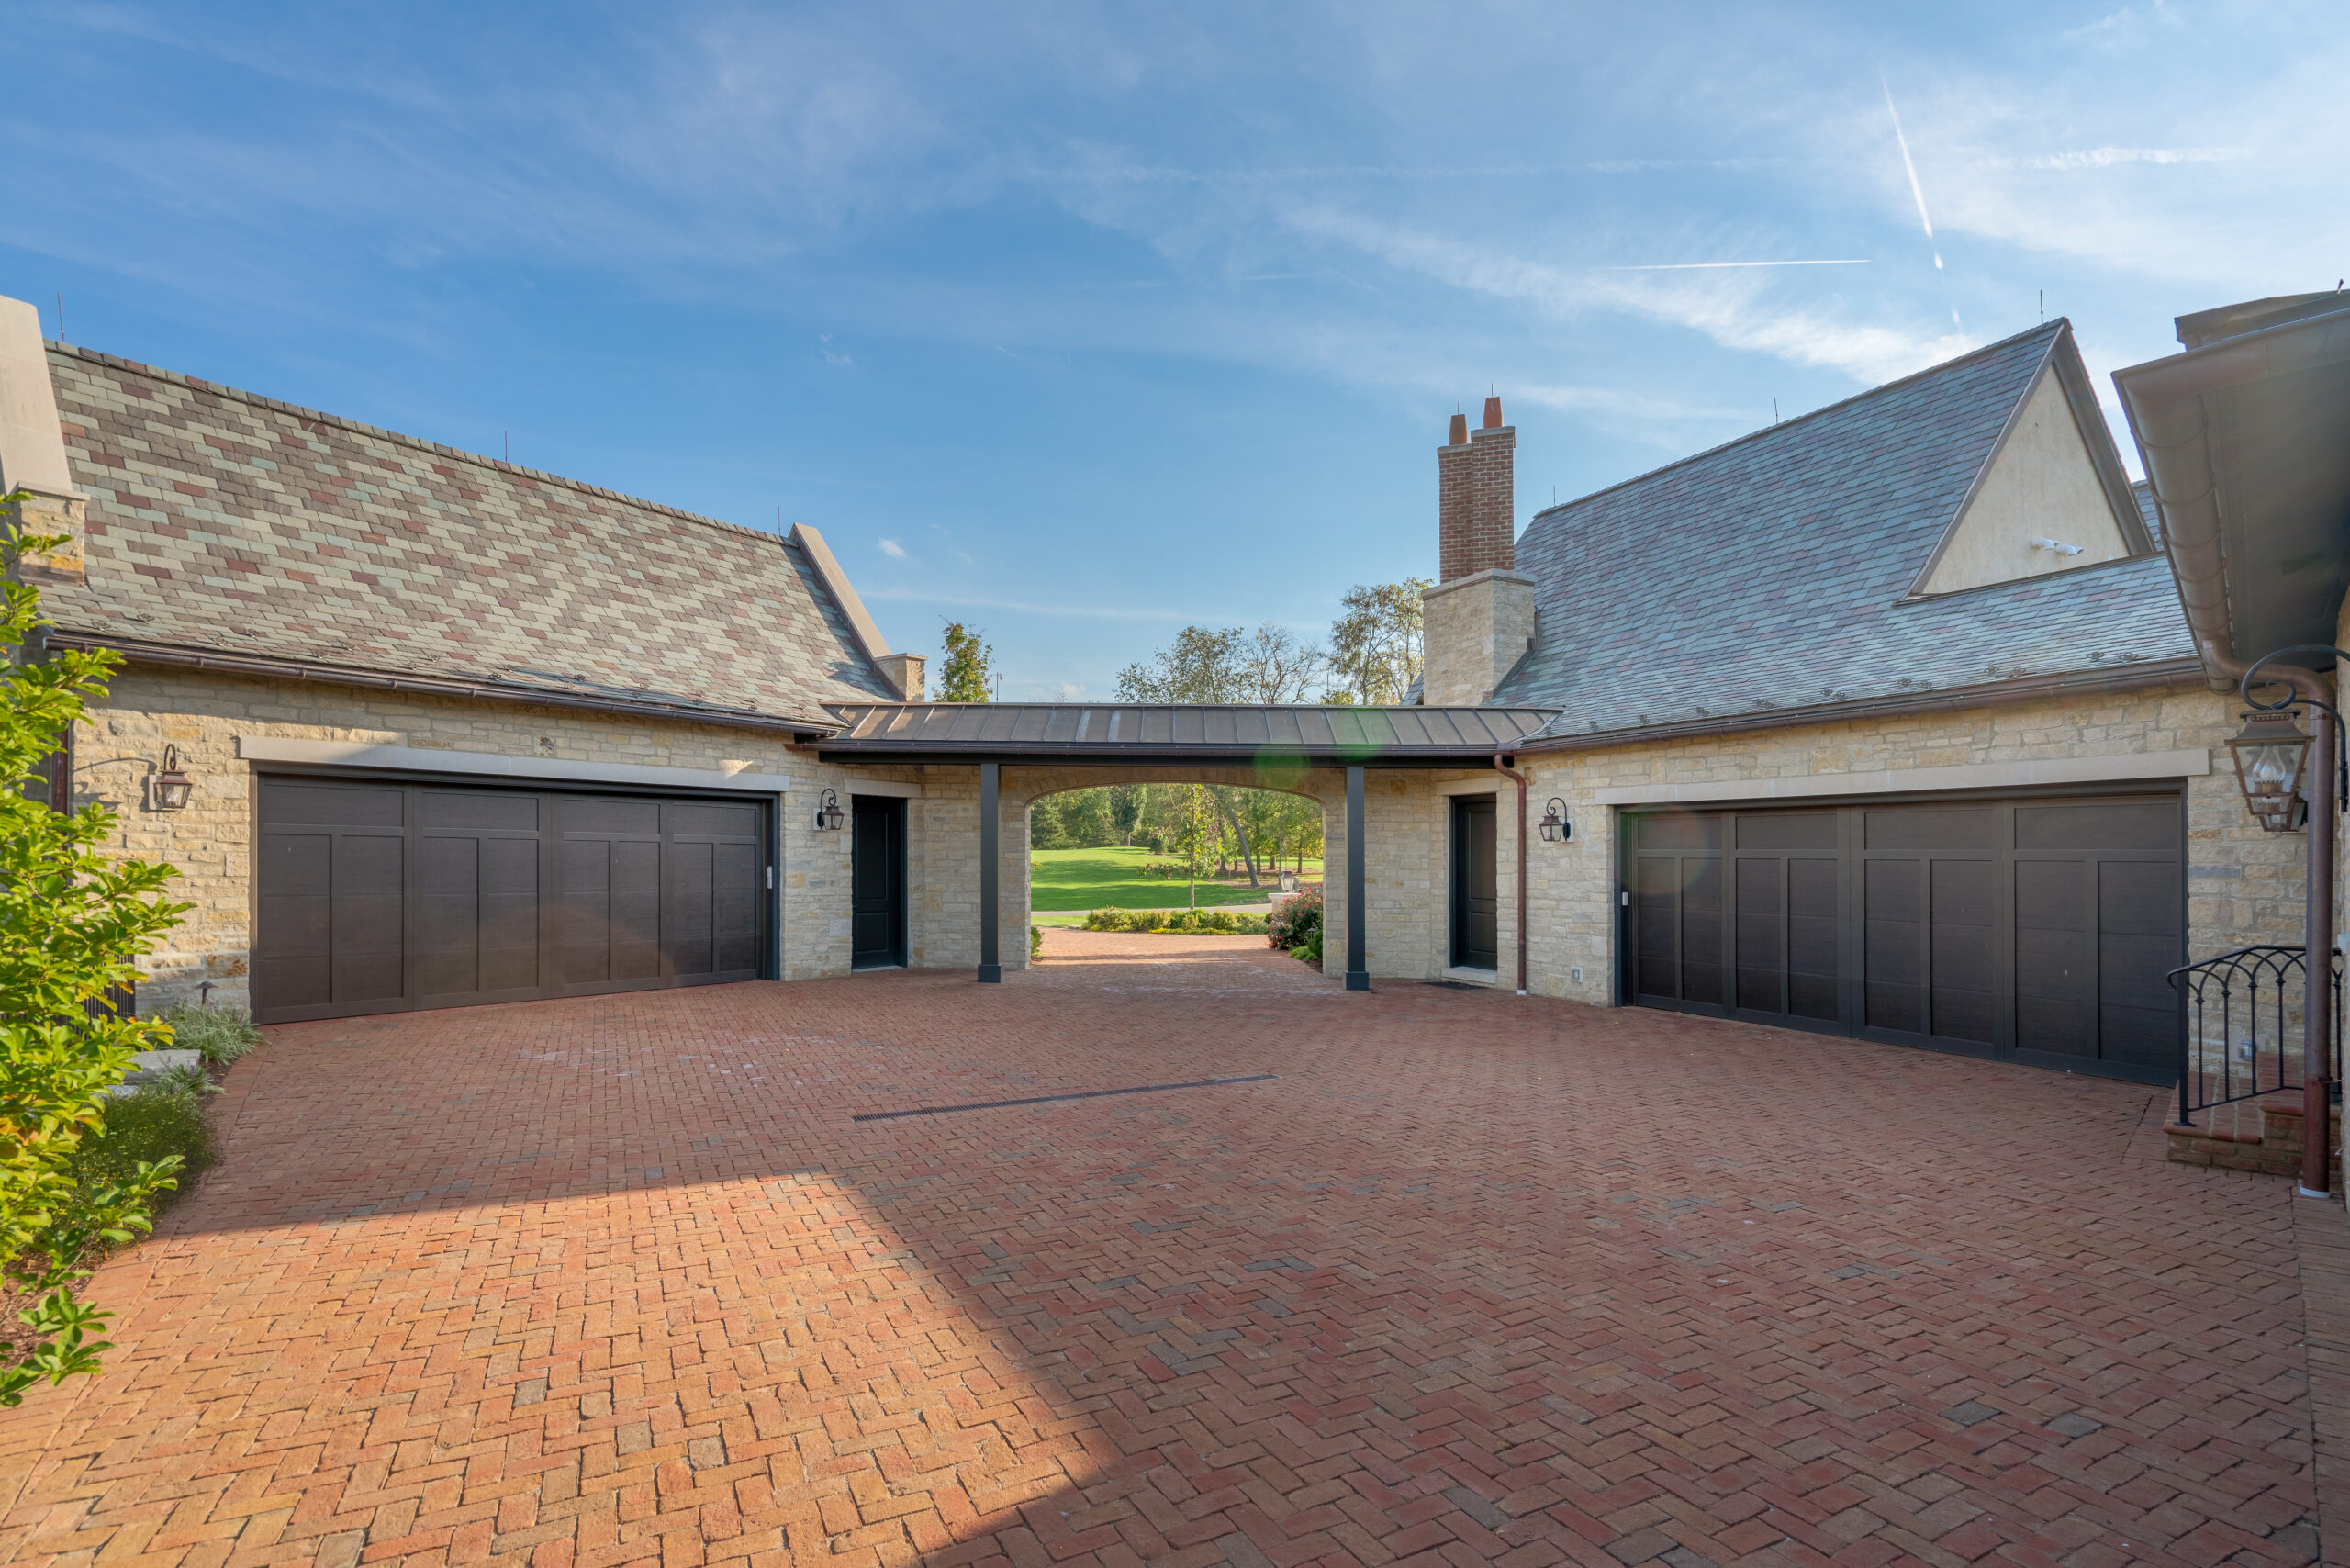 A brick driveway with two garages on either side of an entryway.